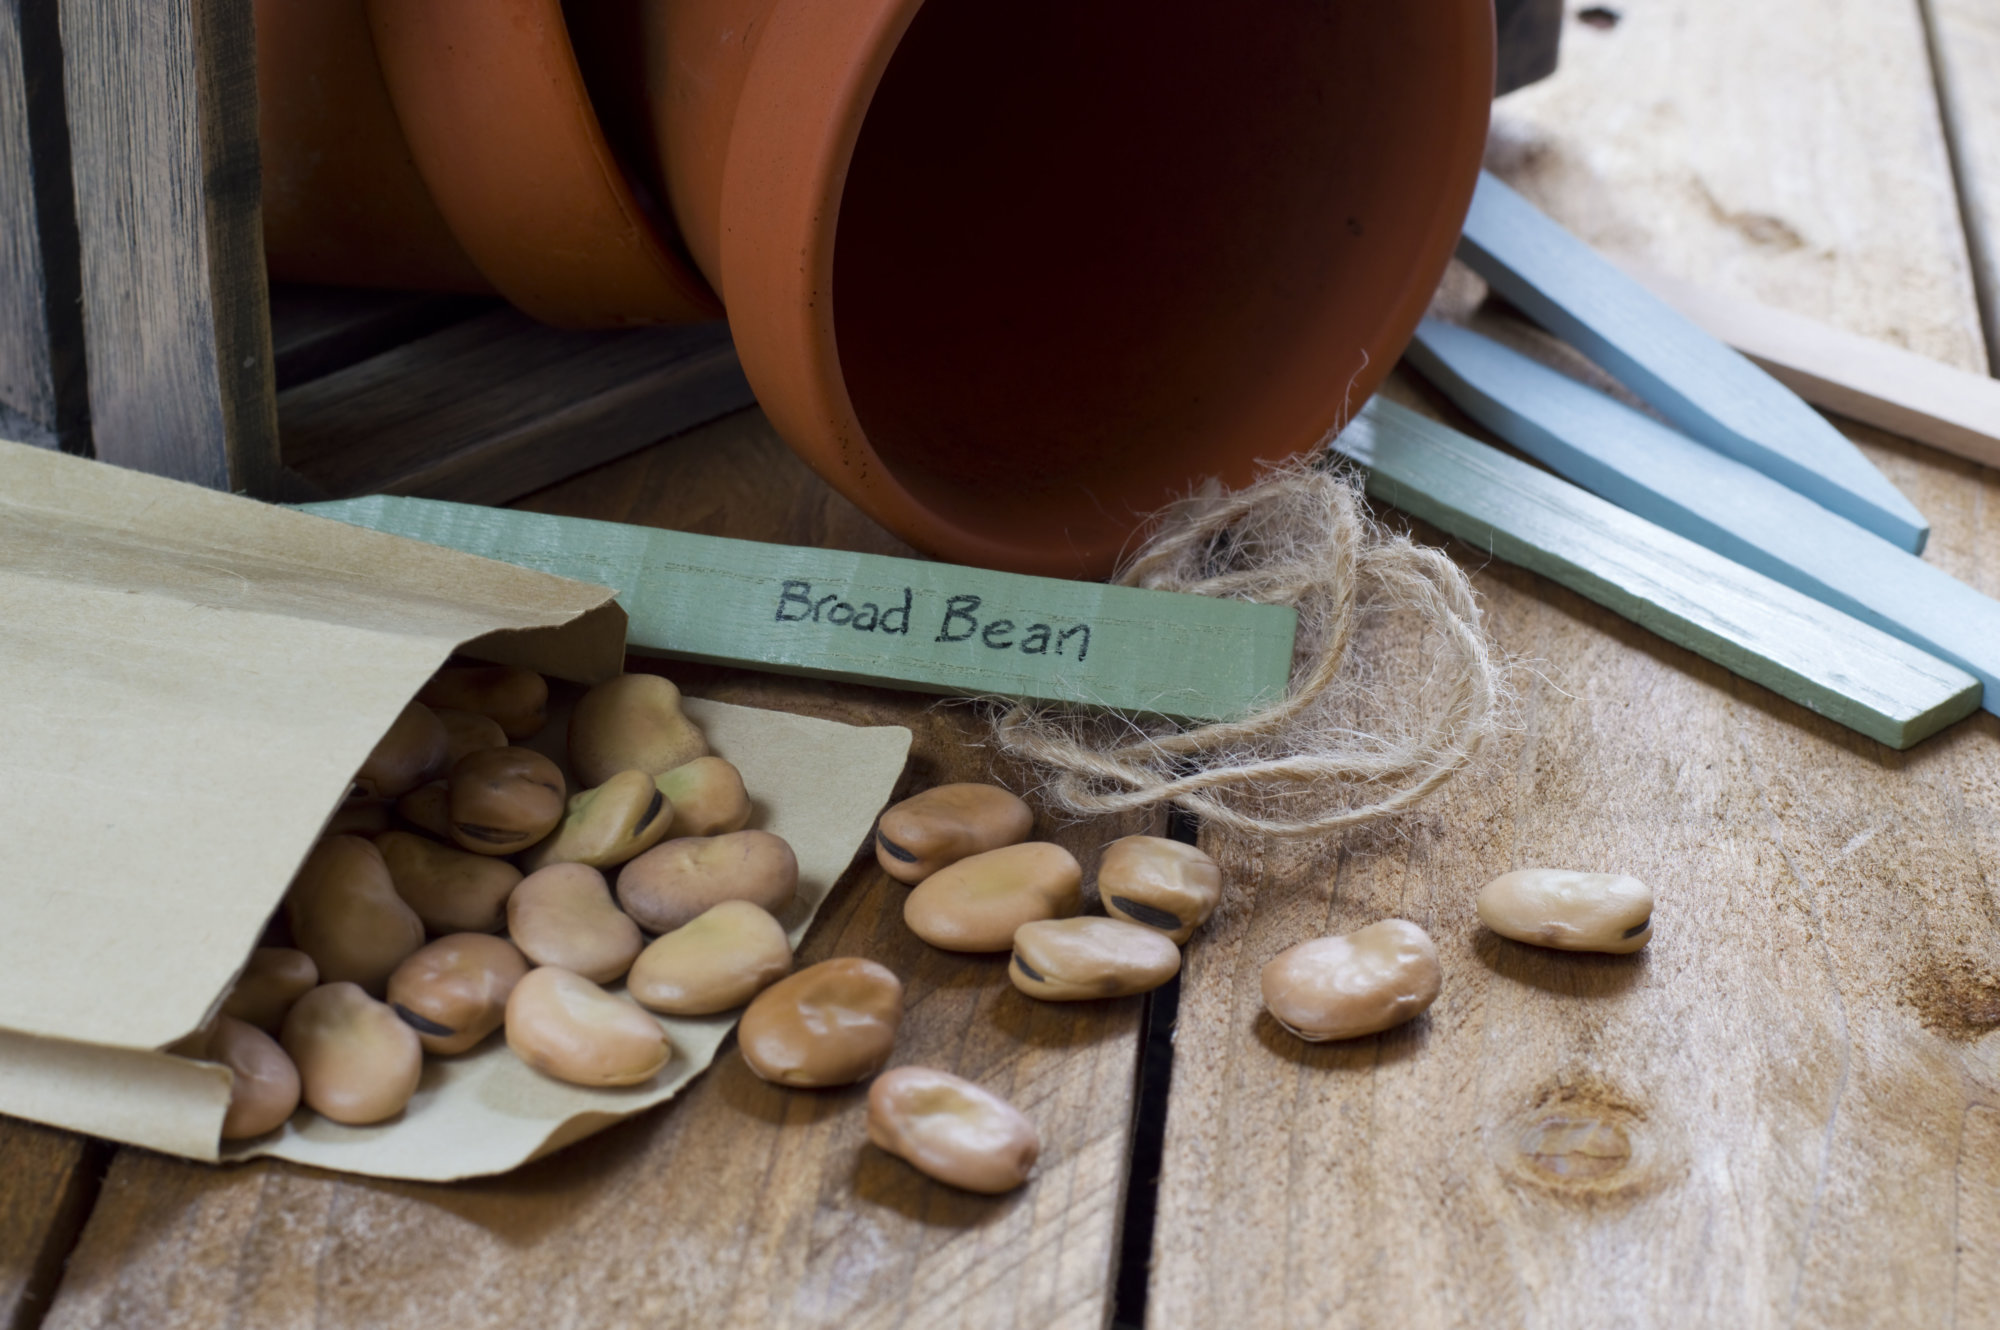 Image of potting shed and bean seeds